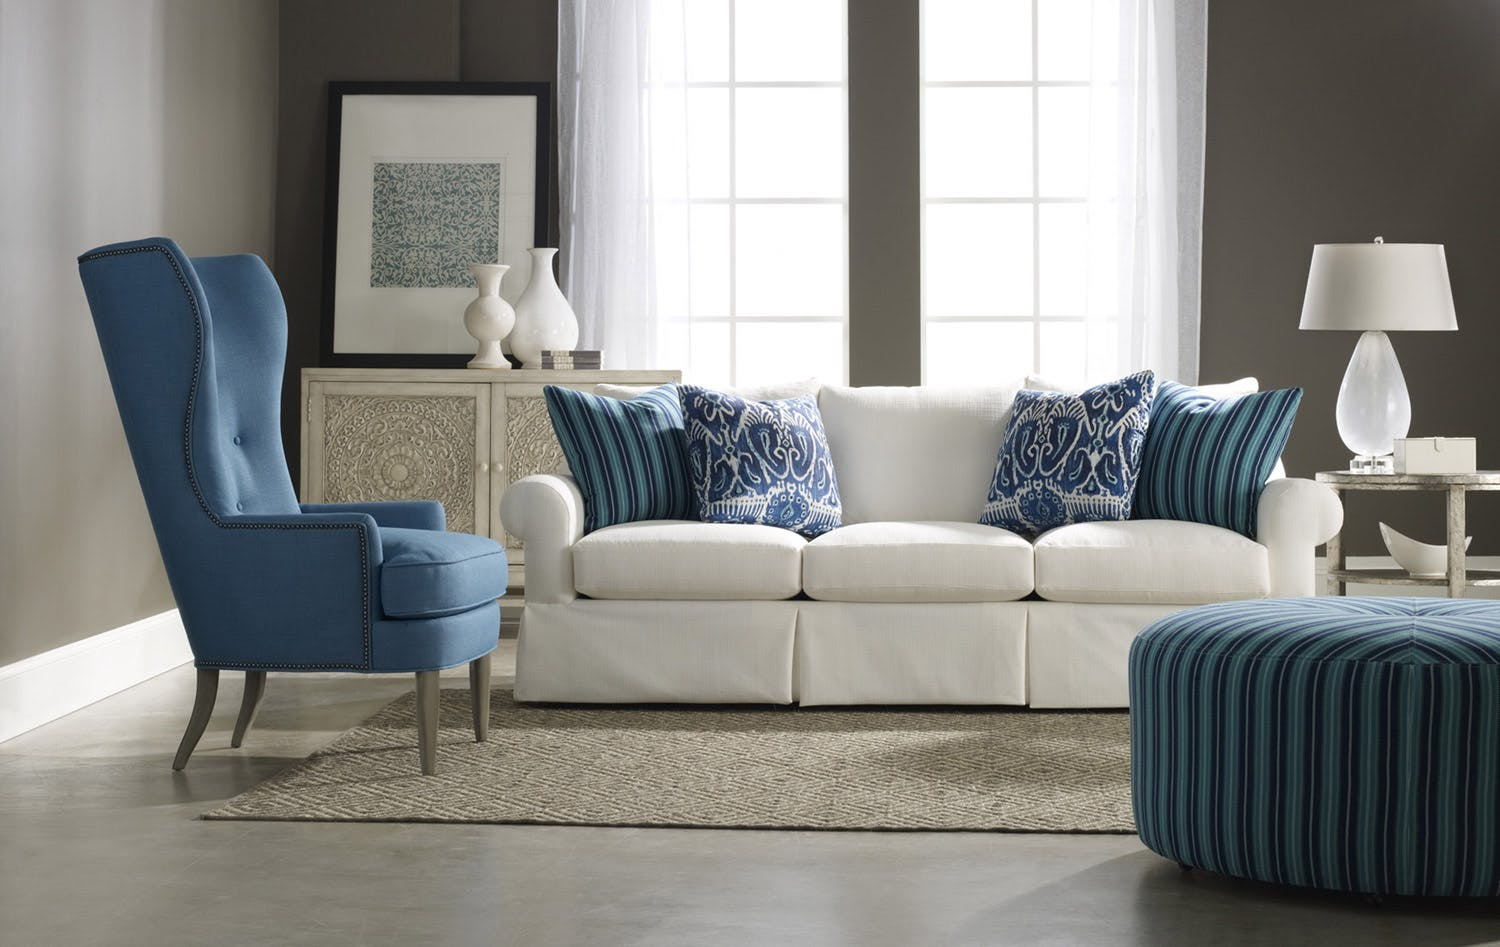 Enticing Kalins Furniture Sarasota | Fancy Florida Home Furnishings